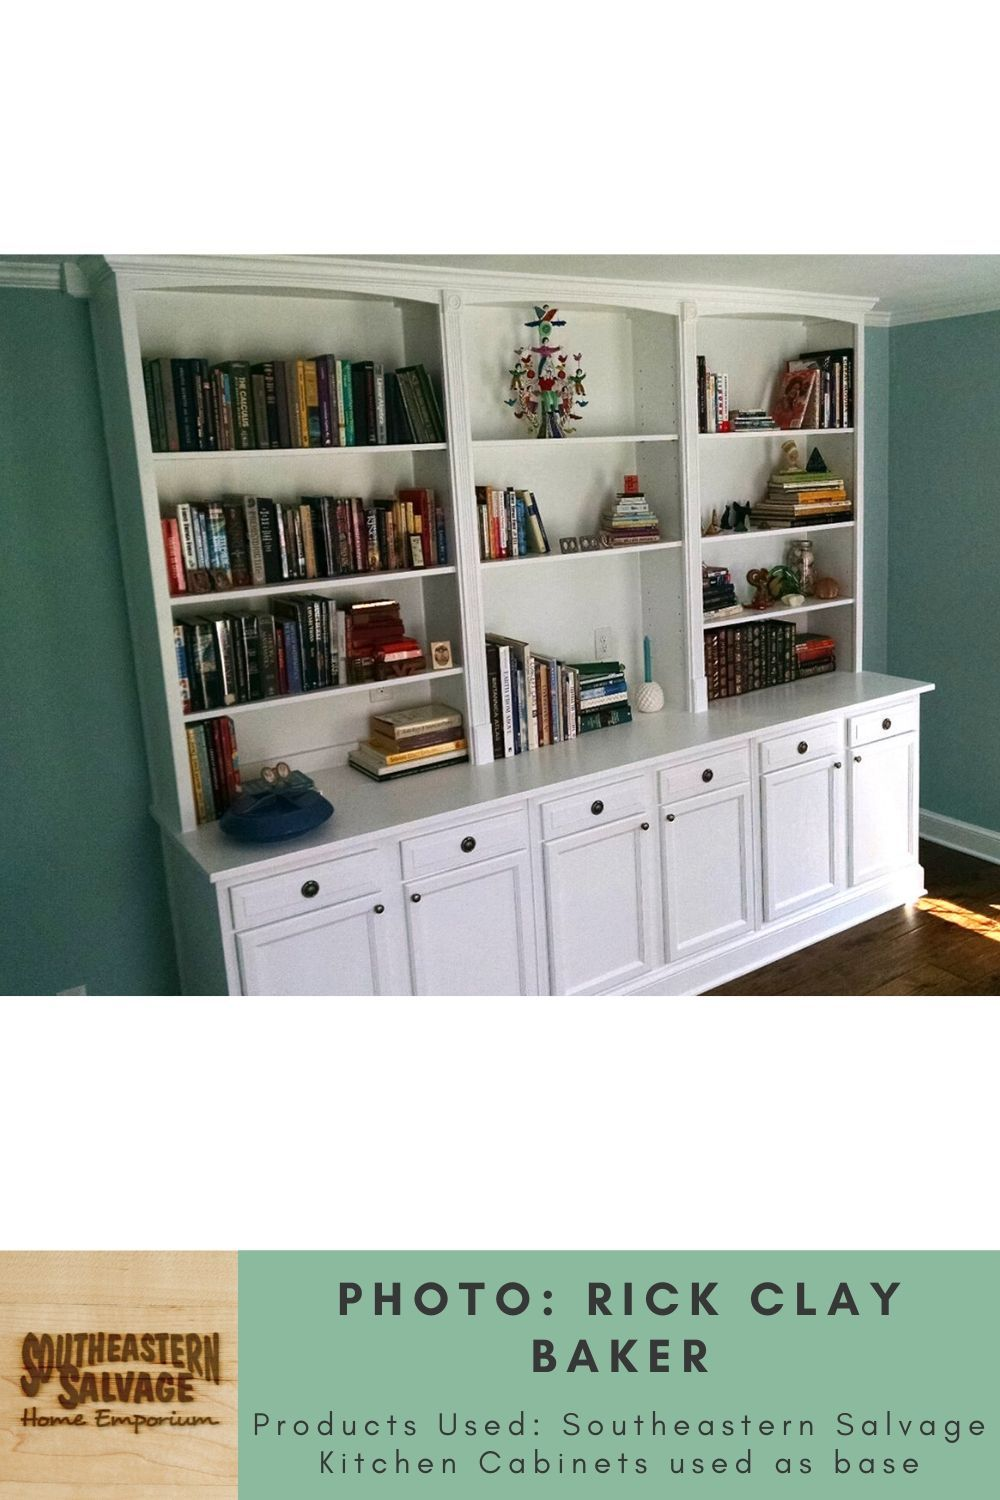 Built In Bookcase By Rick Clay Baker Southeastern Salvage Home Emporium In 2020 Built In Bookcase Bookcase Home